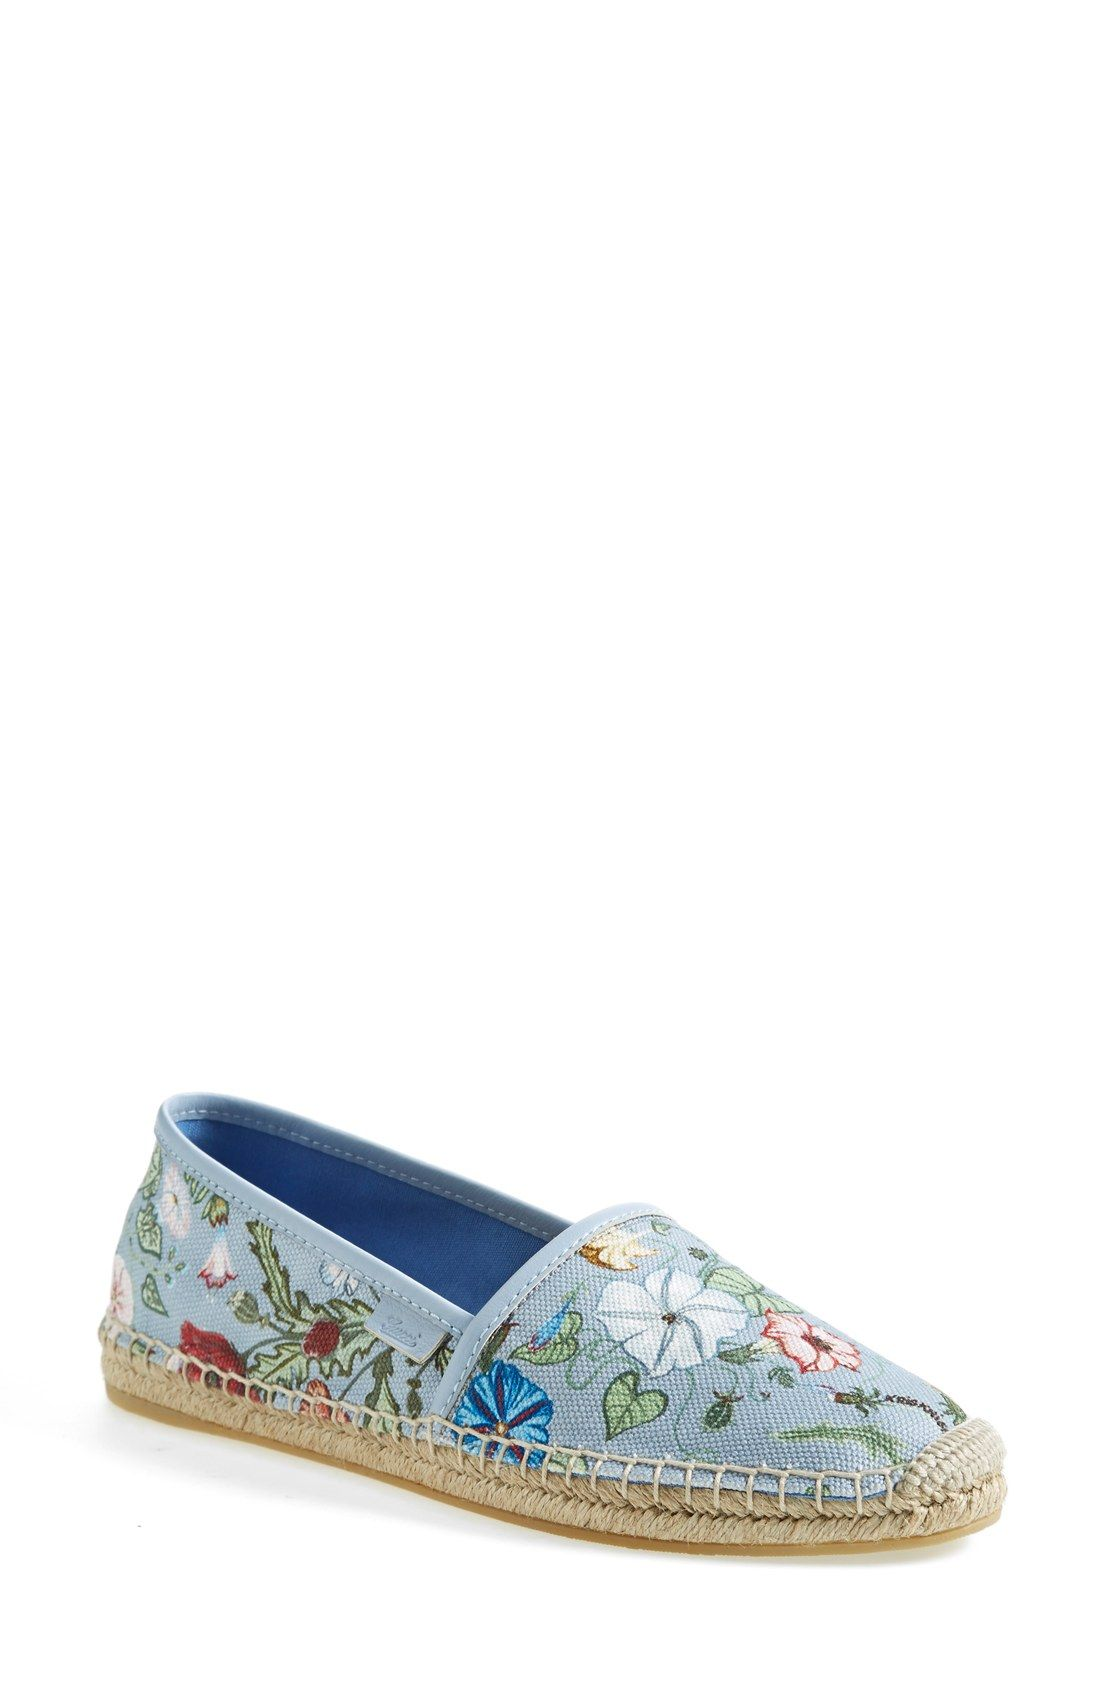 362f1562444b7 Wearing these Gucci floral print espadrilles with frayed denim shorts and a  swing tank.